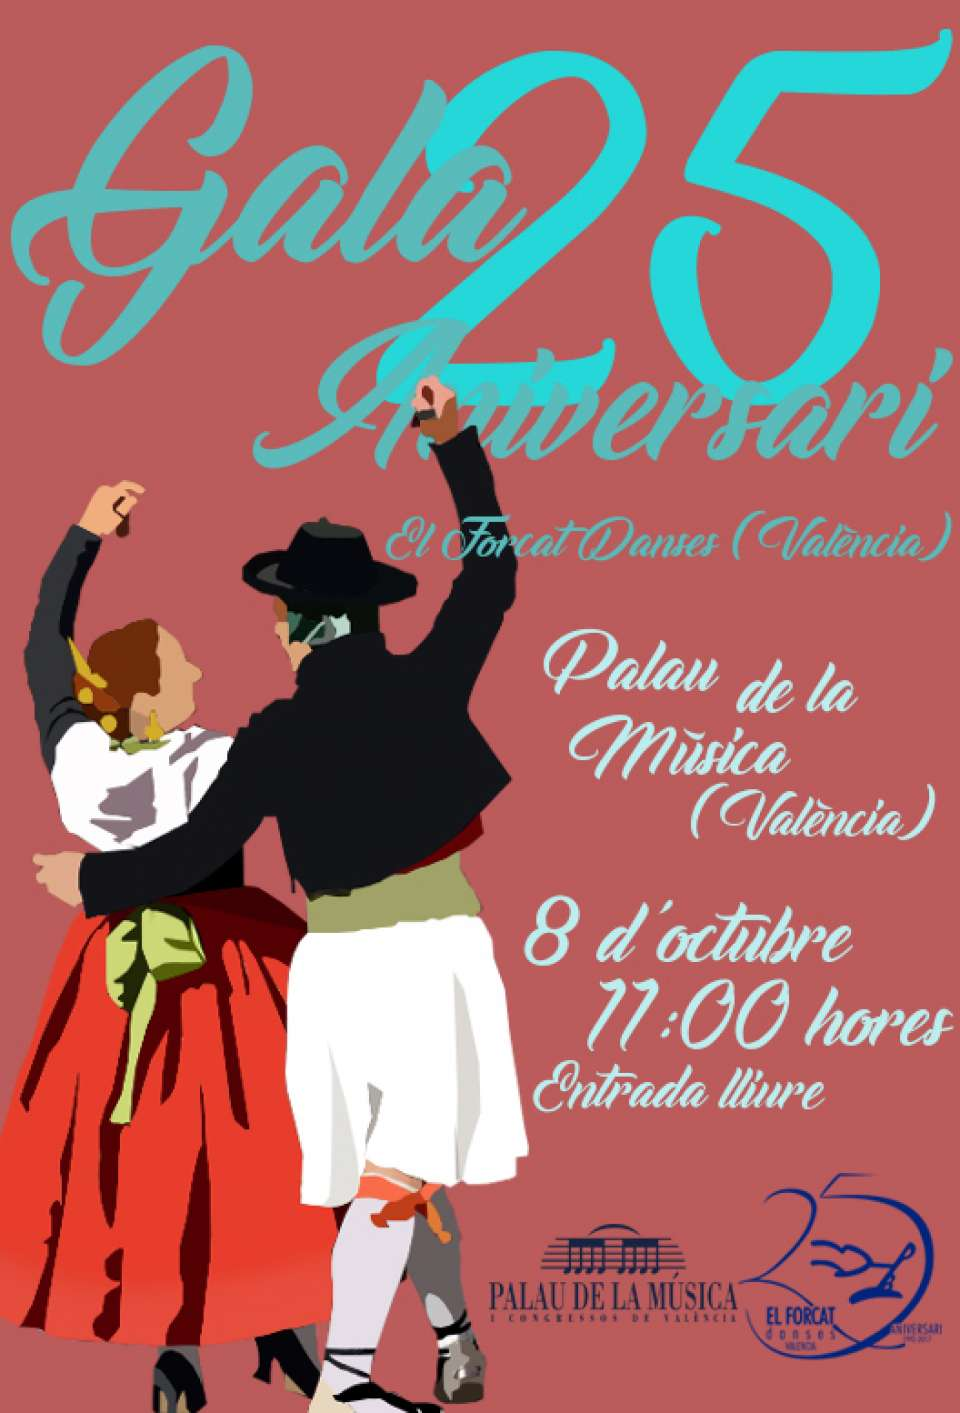 The group dances El Forcat Danses continues with the celebration of its 25th anniversary 1